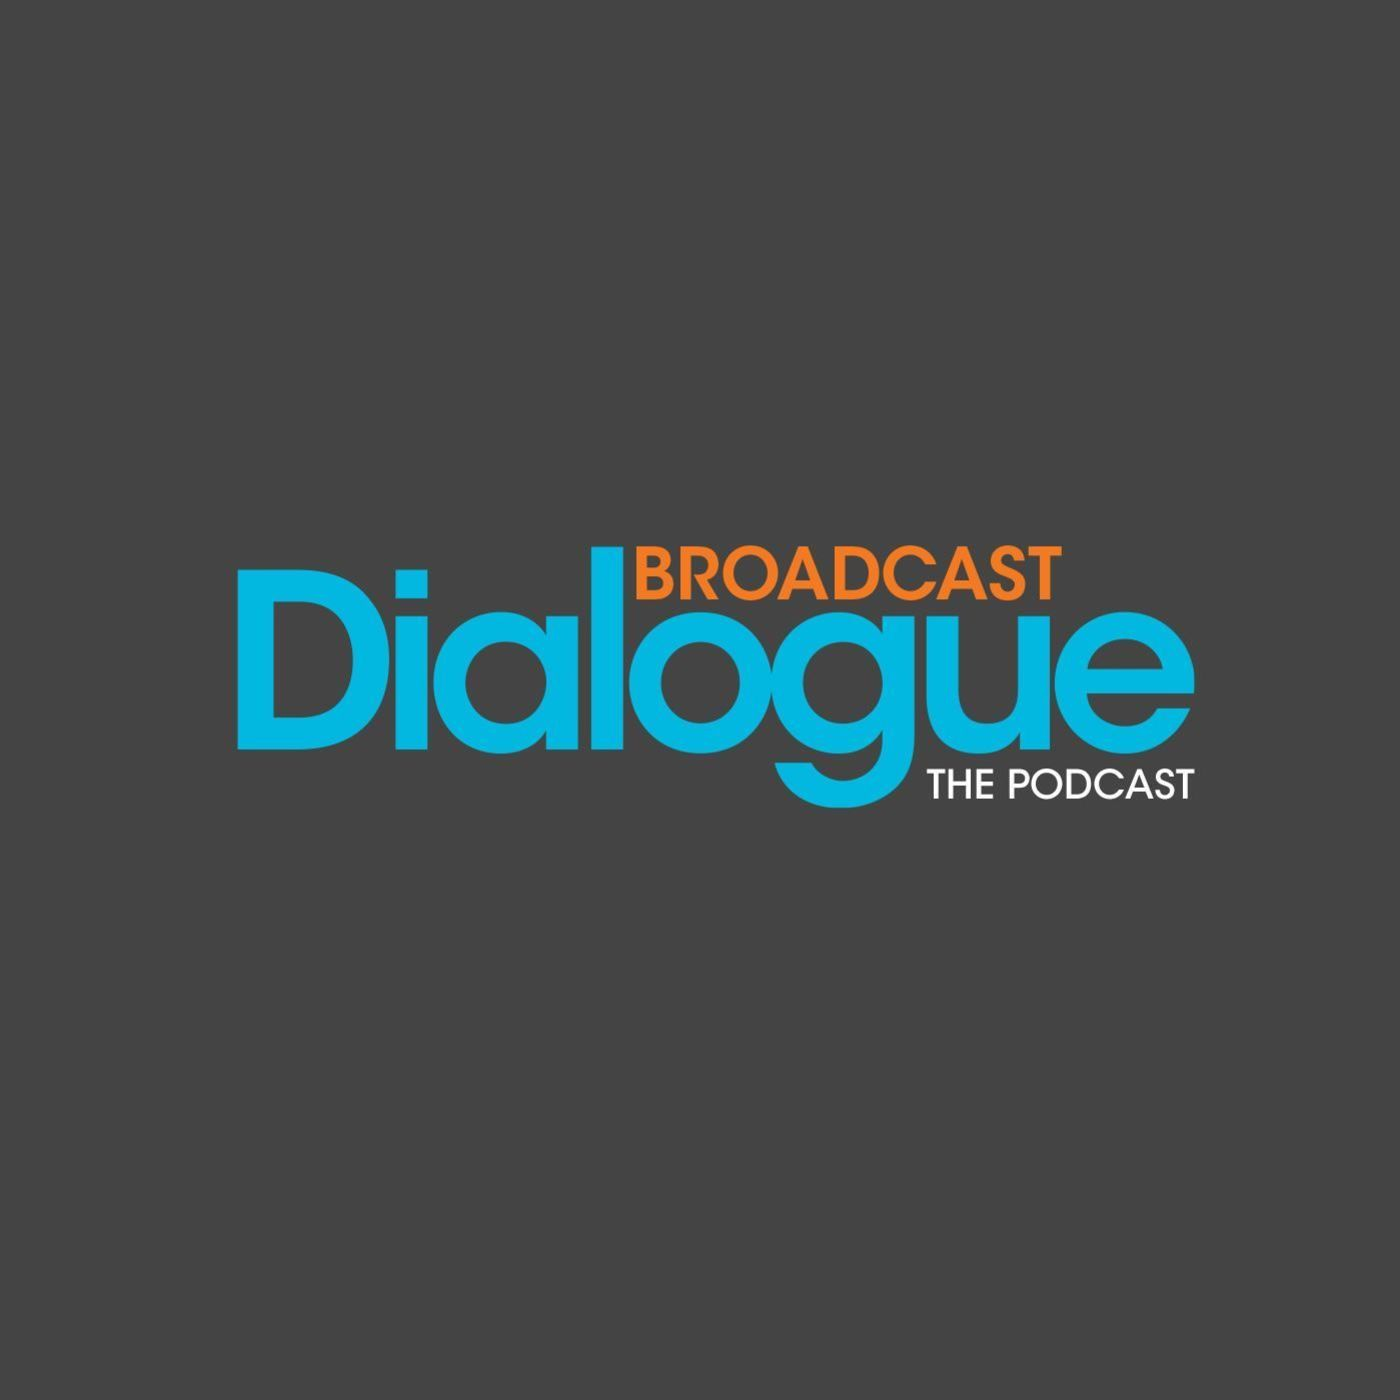 The Broadcast Dialogue team talks 2019 and the rise of podcasting, OTT and esports